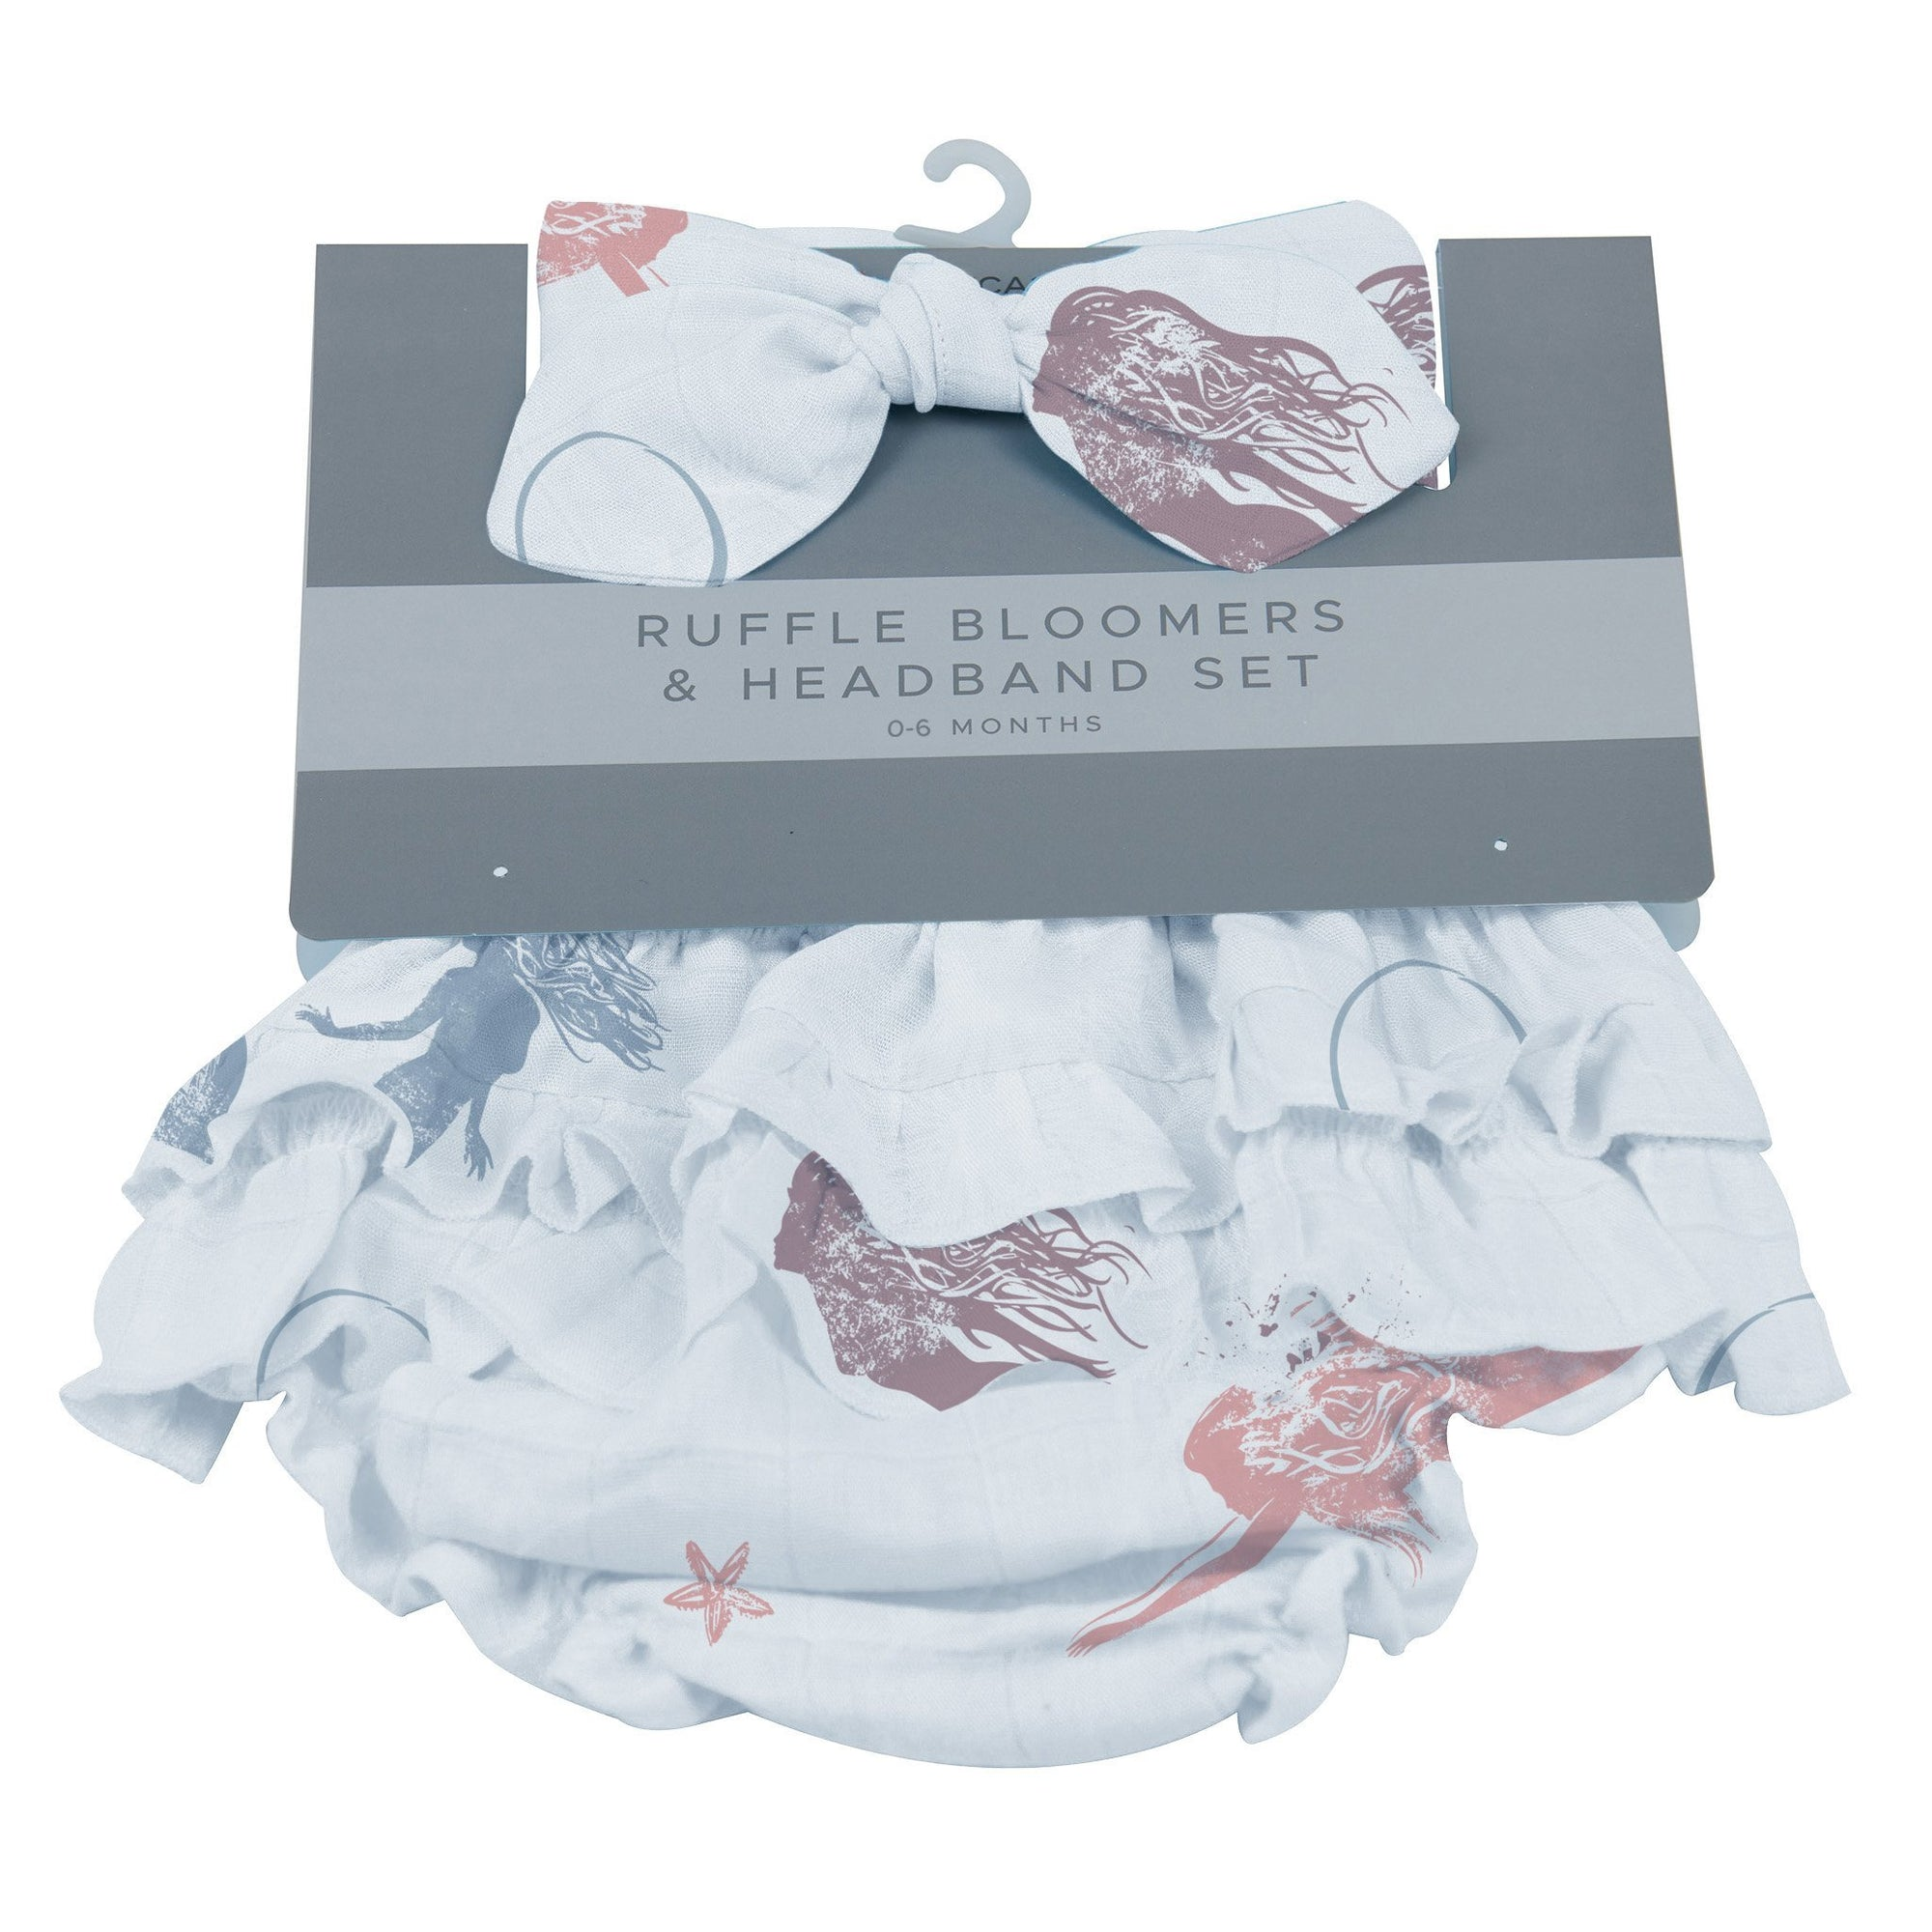 Ruffle Bloomers and Headband Set - Mermaids